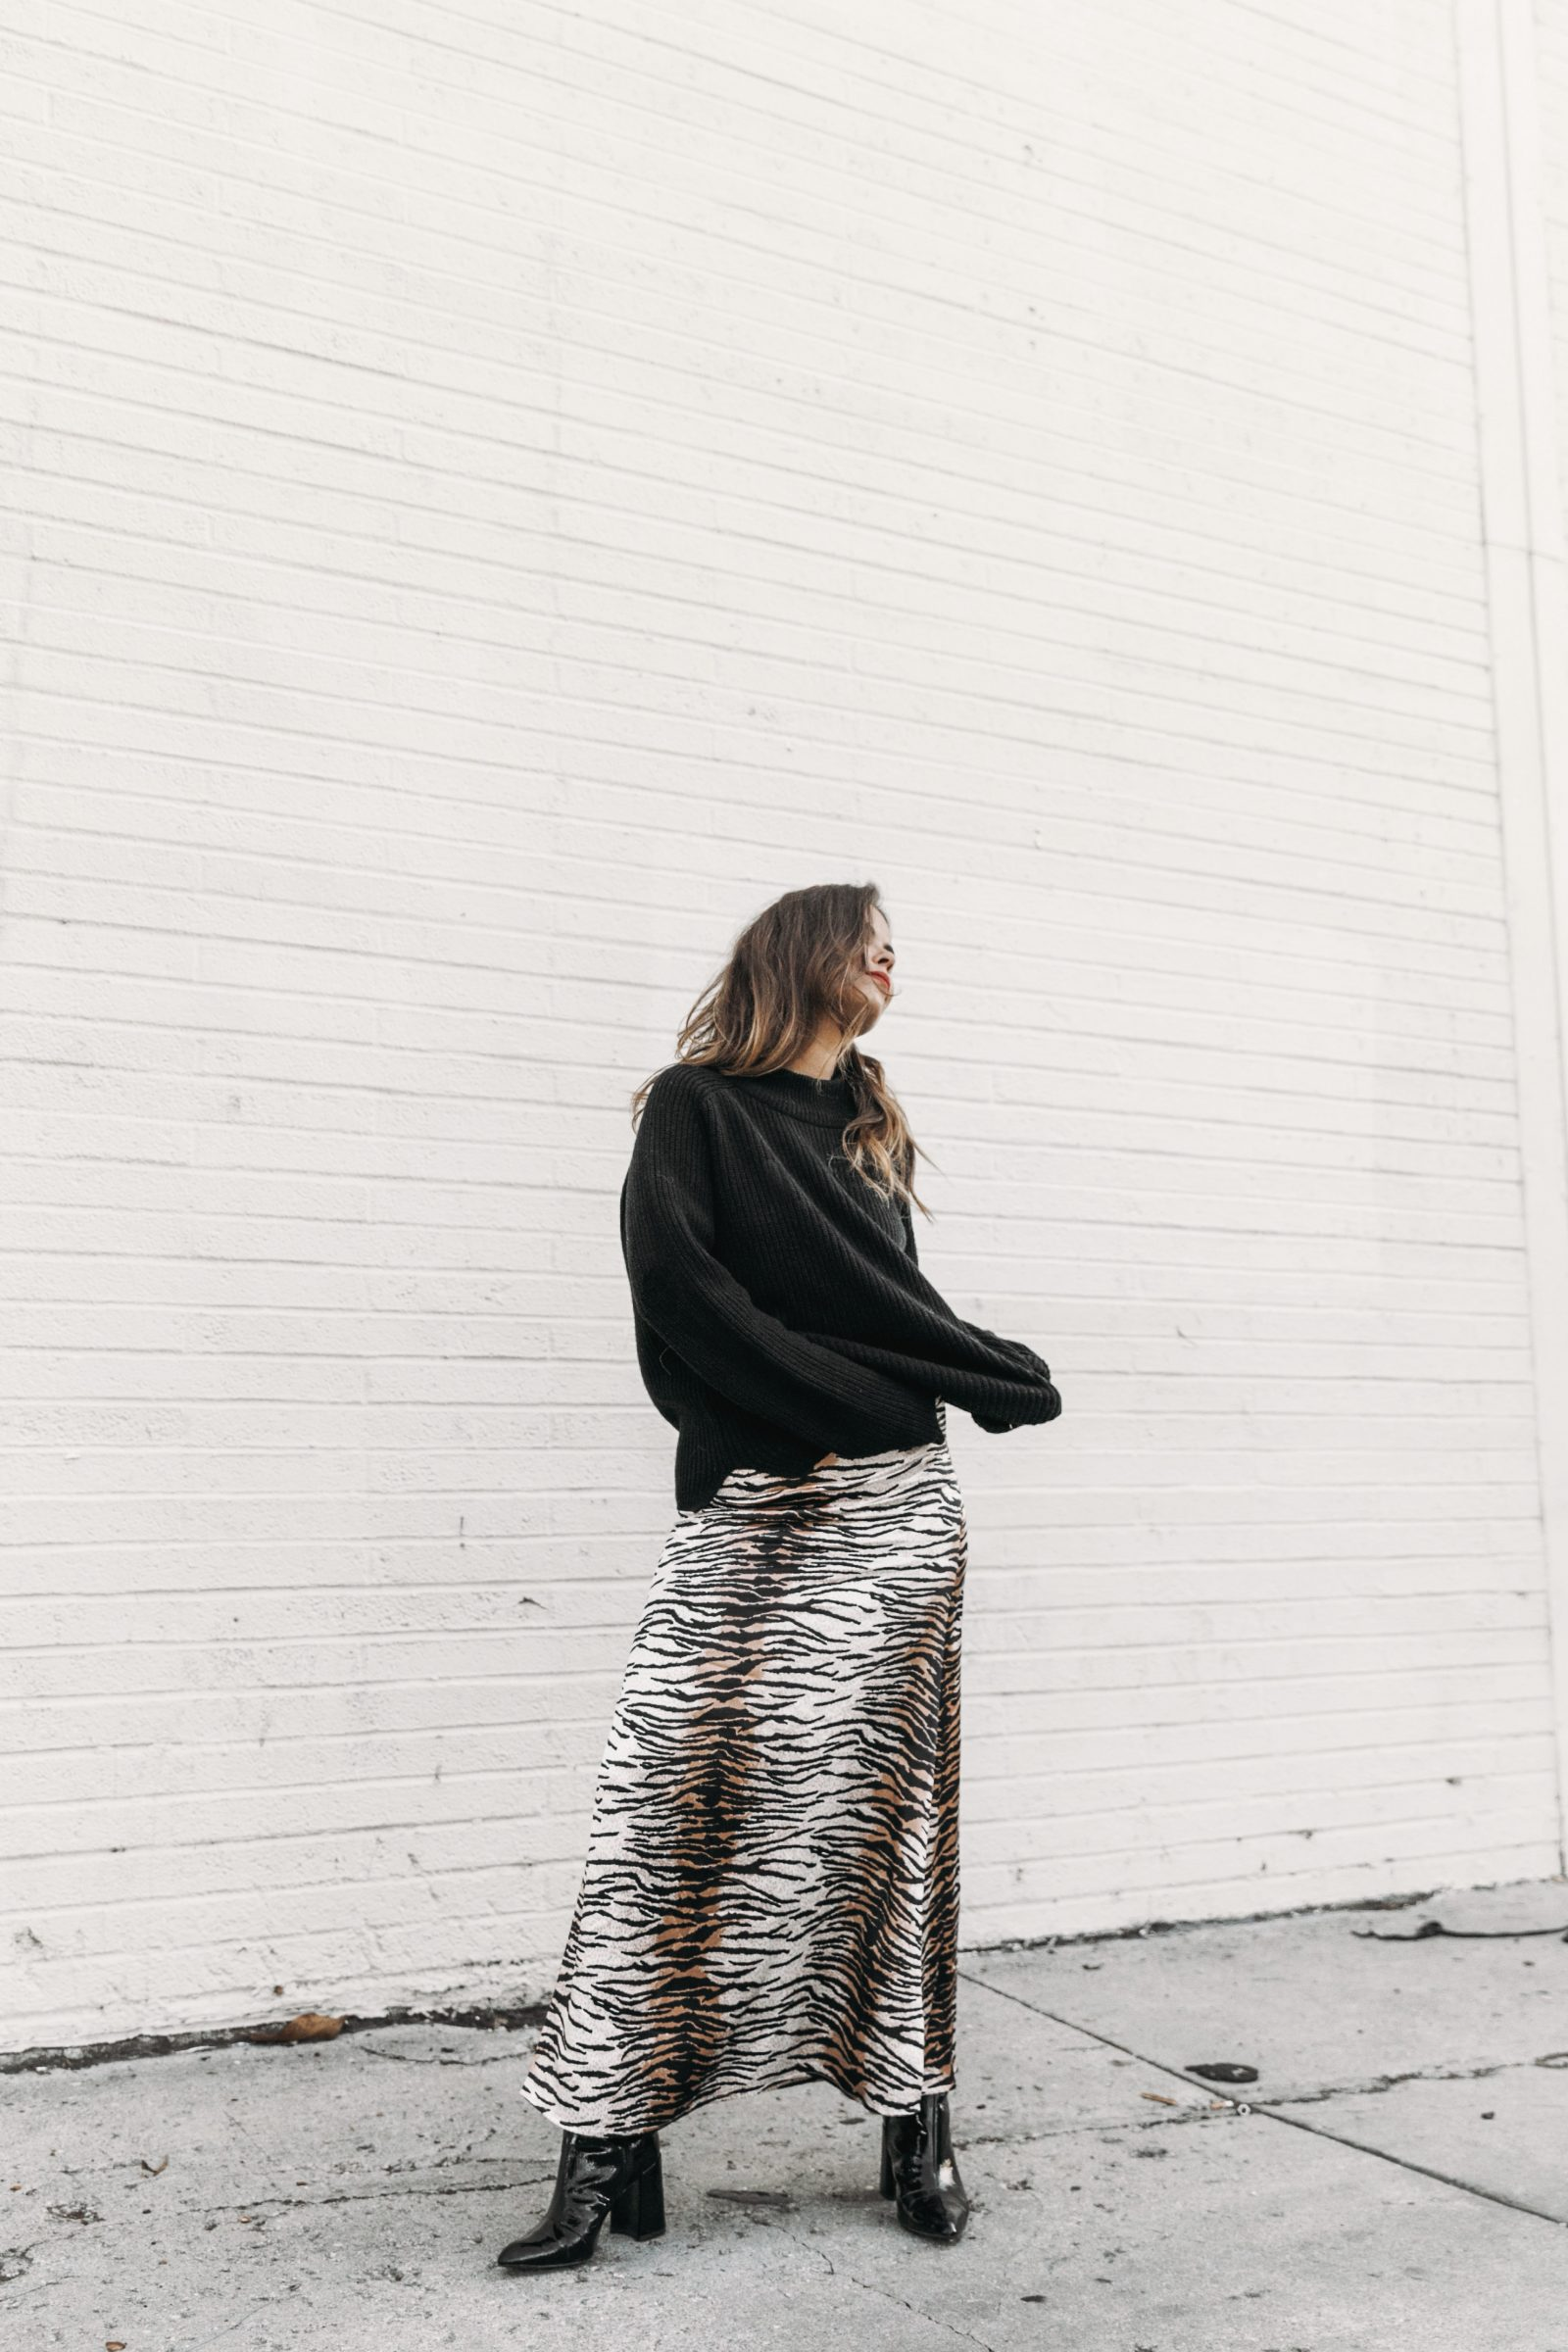 mark_and_spencer-alexa_chung_collection-animal_print_long_dress-black_trench-black_booties-knitt_jumper-outfit-la-street_style-collage_vintage-maxi_dress-98